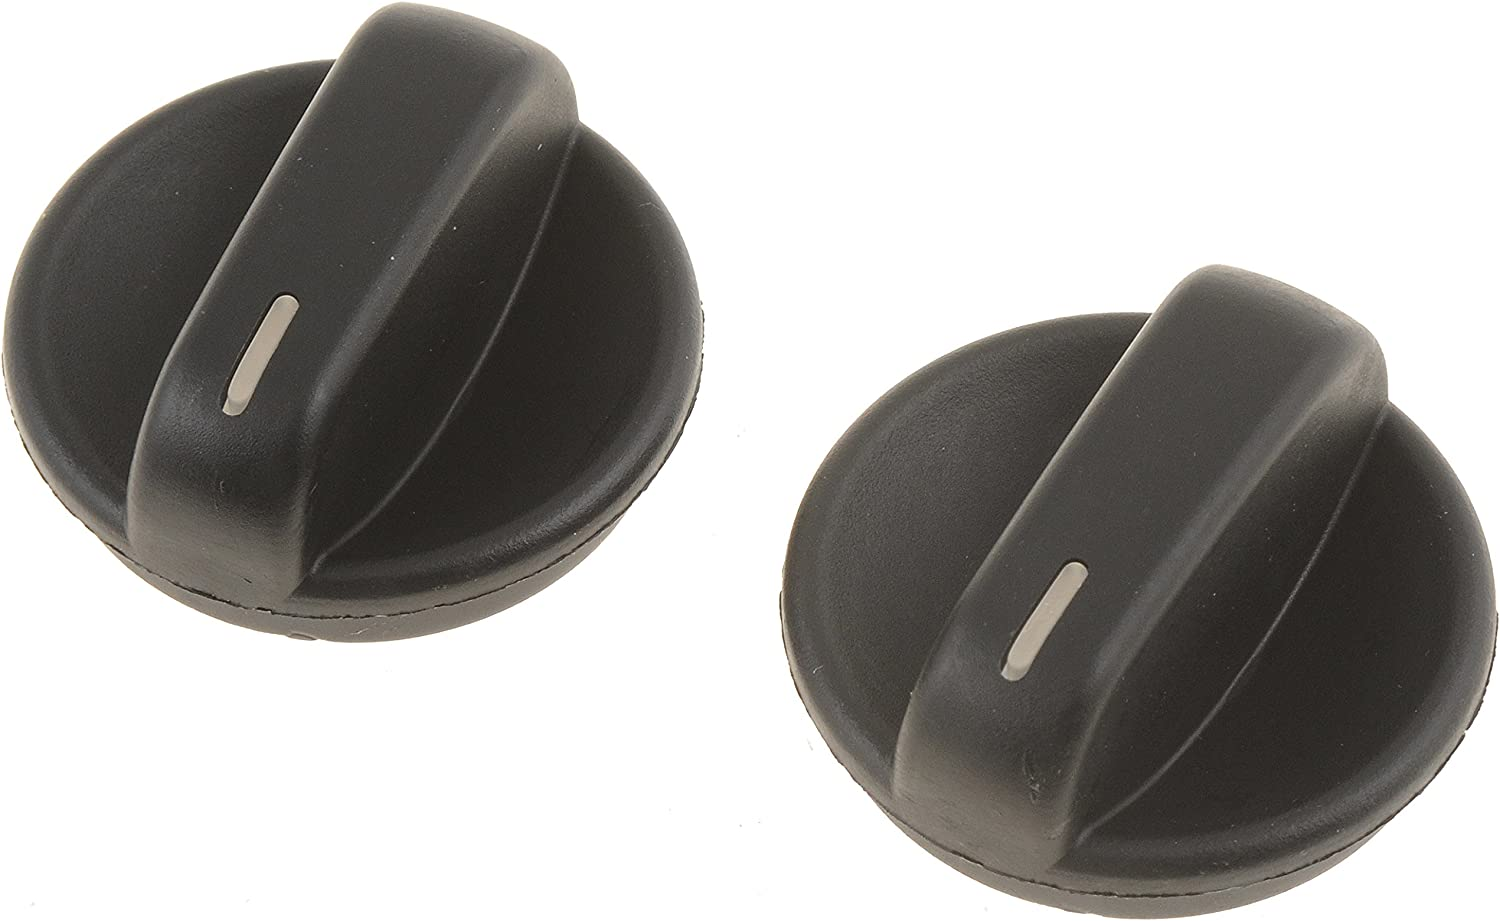 Dorman# 76894 New Temperature Control Knobs